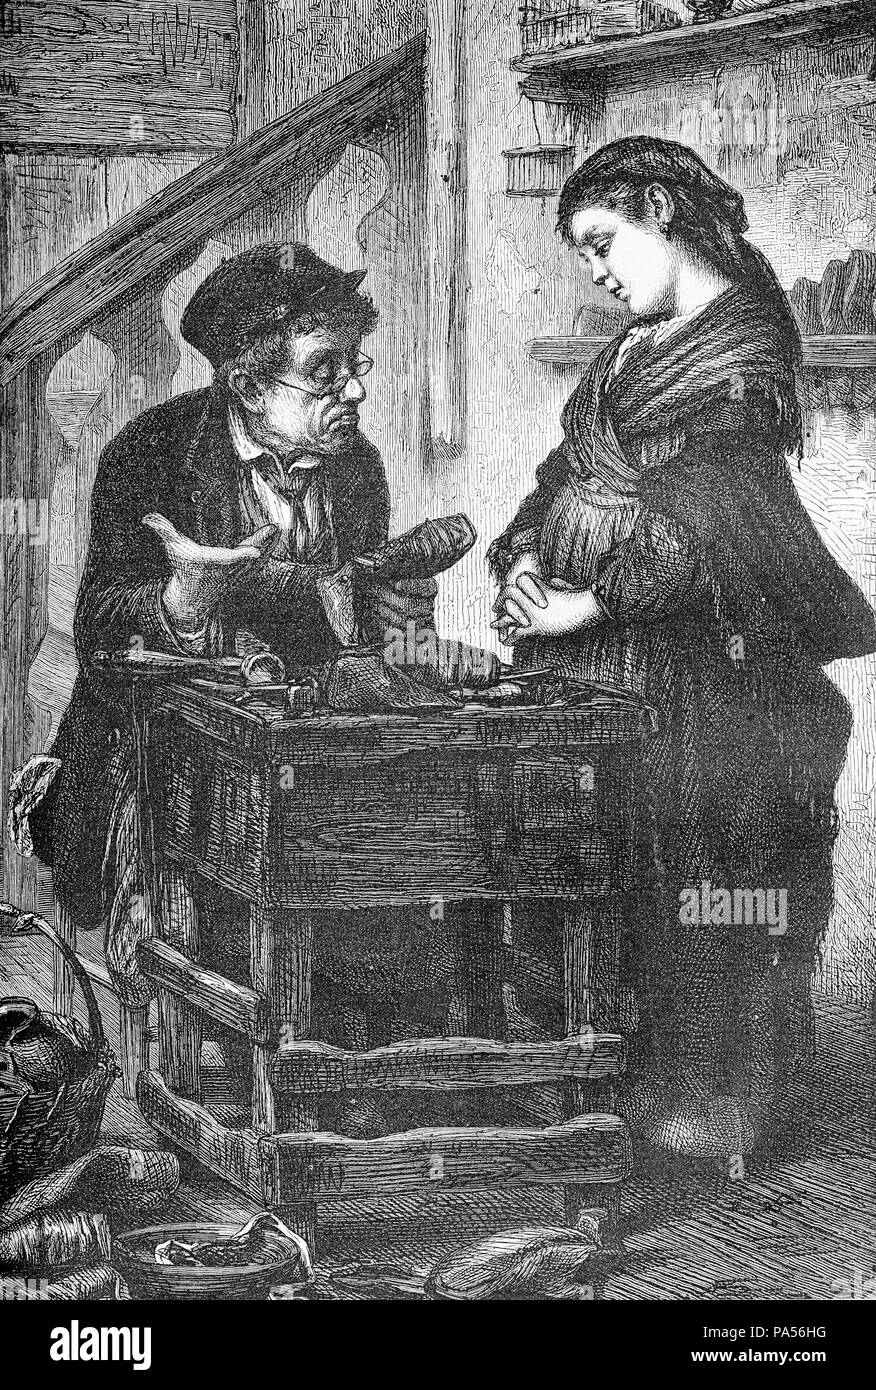 Humor vignette, the shoemaker tells the girl that he cannot repair her shoes, they are beyond hope, old print - Stock Image